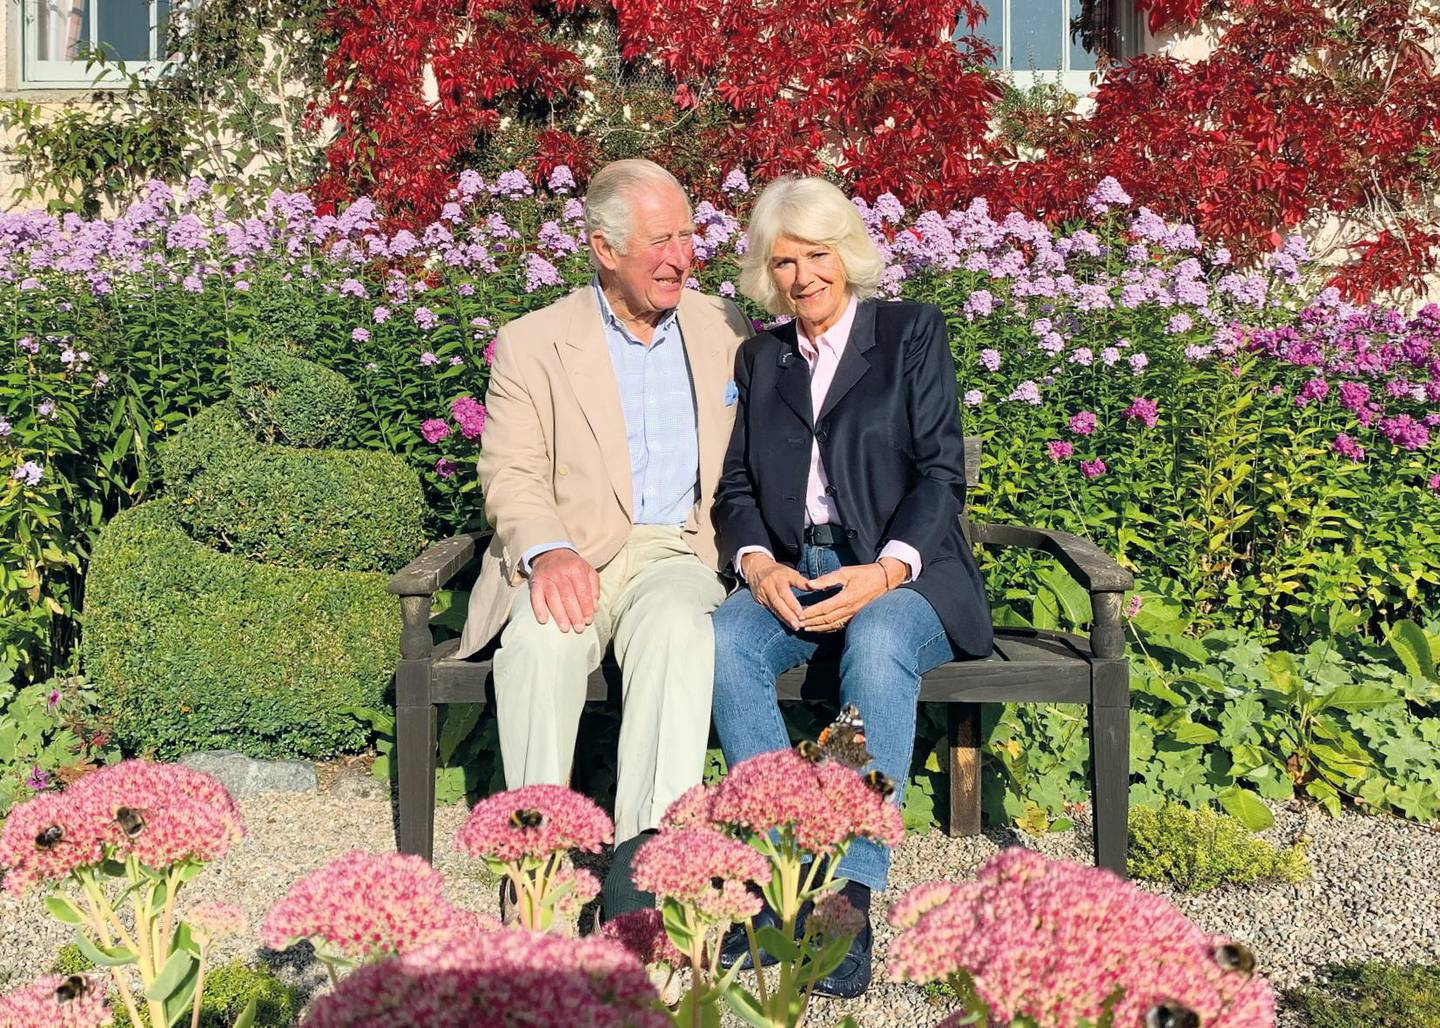 Undated handout image provided by Clarence House of the 2020 Christmas card of Britain's Prince Charles and Camilla, Duchess of Cornwall, which features a photograph taken by a member of their staff in the early autumn, at Birkhall, Scotland, Britain. The Prince of Wales and The Duchess of Cornwall/Clarence House via REUTERS THE PHOTOGRAPH MUST NOT BE DIGITALLY ENHANCED, MANIPULATED OR MODIFIED IN ANY MANNER OR FORM AND MUST INCLUDE ALL OF THE INDIVIDUALS IN THE PHOTOGRAPH WHEN PUBLISHED. THIS IMAGE IS PROVIDED FOR FREE EDITORIAL USE UNTIL JANUARY 31, 2021 WHEN IT MUST BE REMOVED FROM ALL SYSTEMS AND THOSE OF YOUR SUBSCRIBERS. USE OF THE IMAGE AFTER THIS DATE WILL REQUIRE PERMISSION FROM CLARENCE HOUSE. THIS PHOTOGRAPH IS STRICTLY FOR EDITORIAL USE ONLY, NO COMMERCIAL USE, INCLUDING SOUVENIRS, COVERS, ADVERTISING, PROMOTIONAL OR NON-EDITORIAL USE PERMITTED. THE PHOTOGRAPH CANNOT BE CROPPED, MANIPULATED OR ALTERED IN ANY WAY. NO CHARGE SHOULD BE MADE FOR THE SUPPLY, RELEASE OR PUBLICATION OF THE PHOTOGRAPH. THIS IMAGE HAS BEEN SUPPLIED BY A THIRD PARTY. MANDATORY CREDIT. NO RESALES. NO ARCHIVES